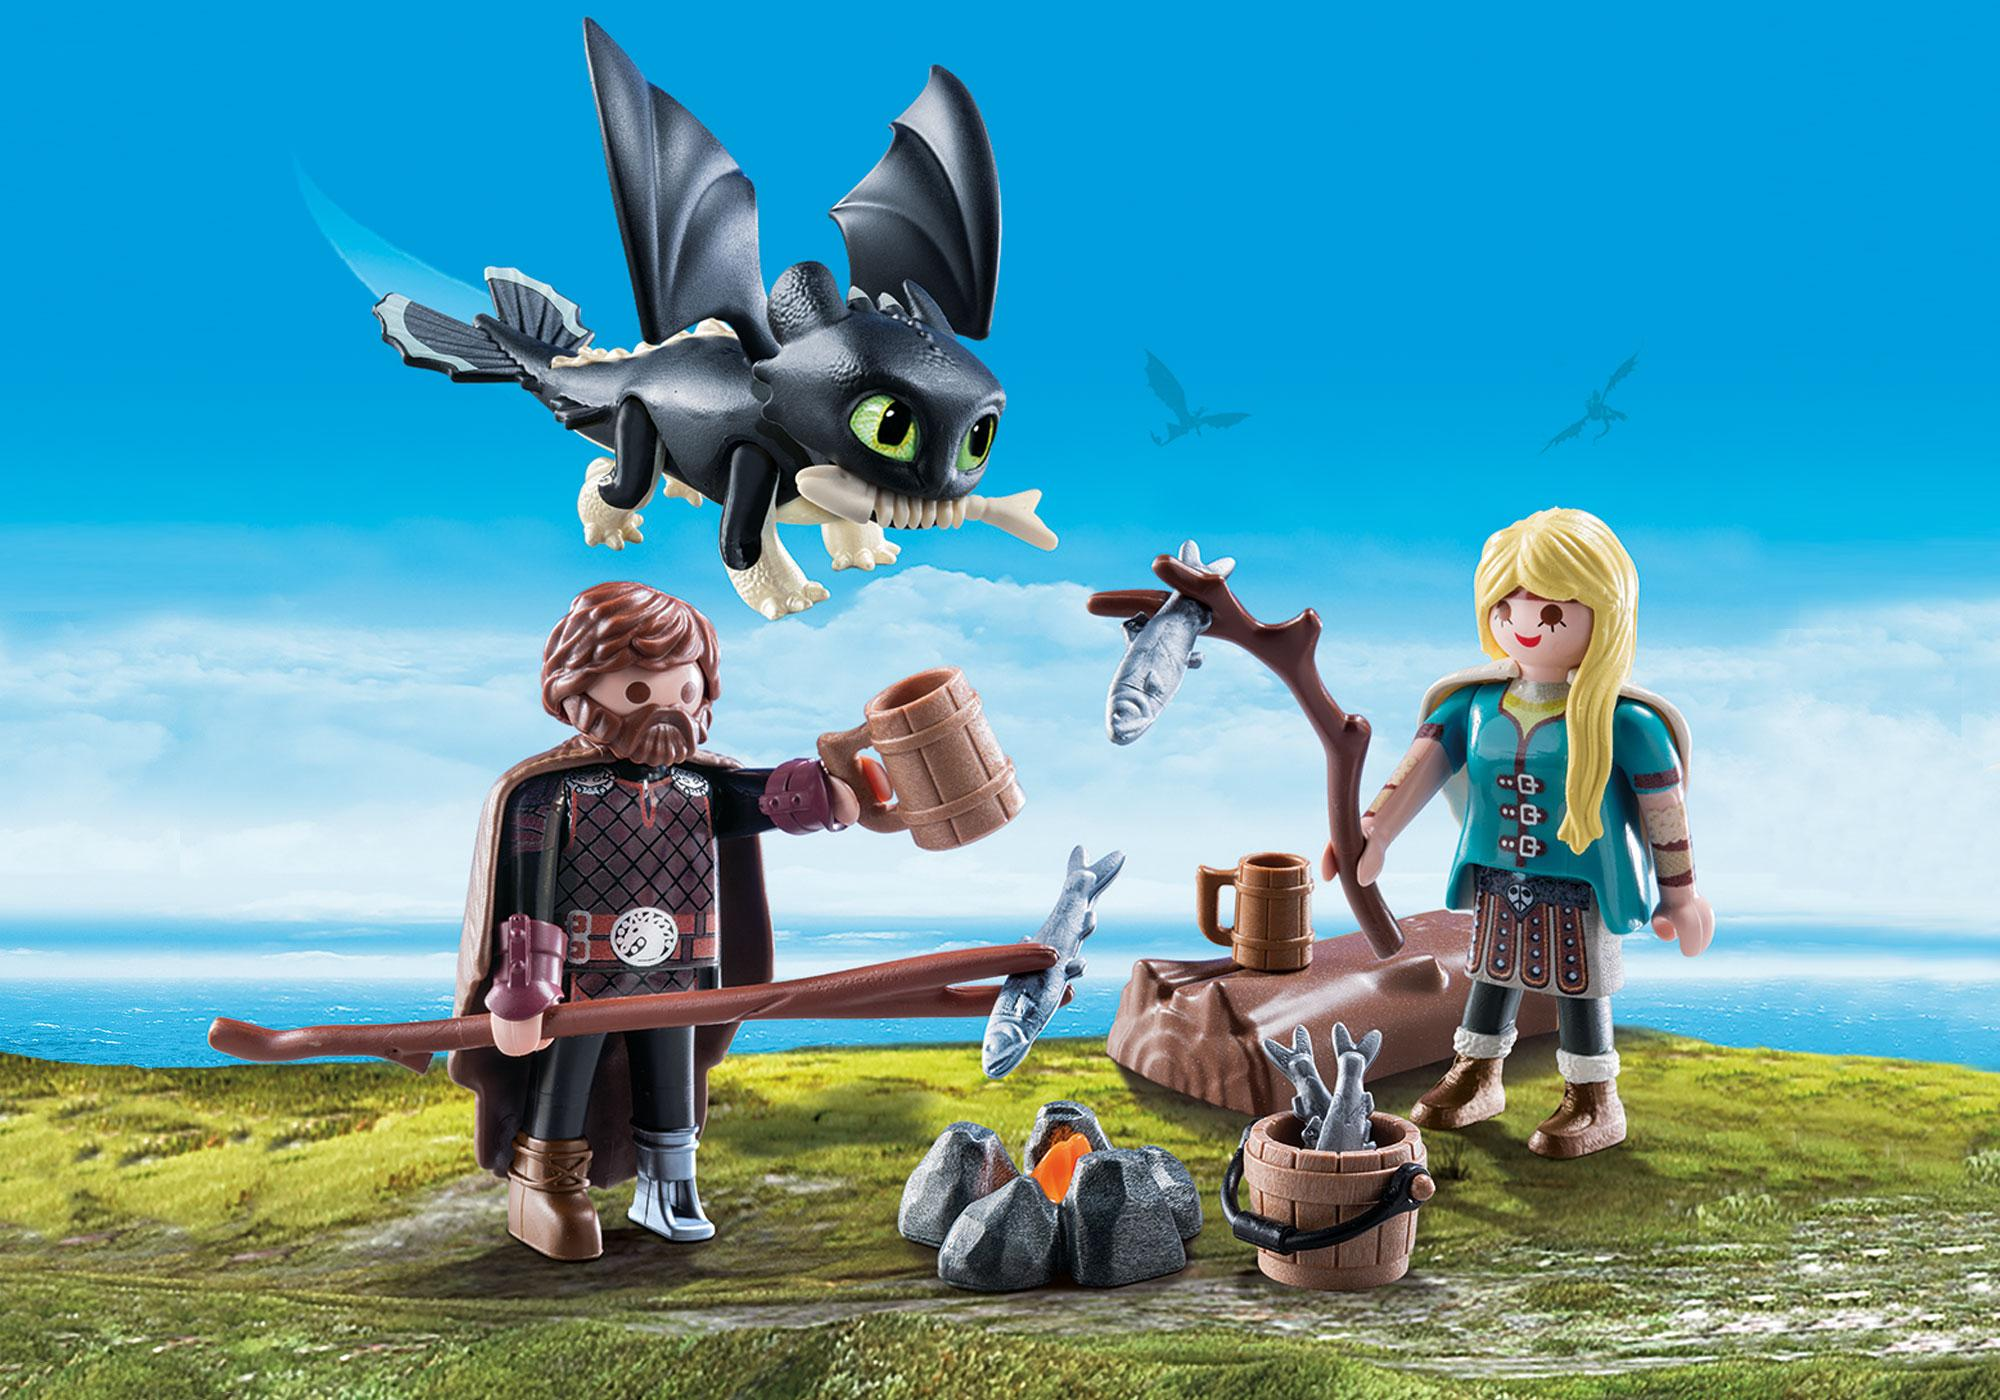 http://media.playmobil.com/i/playmobil/70040_product_detail/Hiccup and Astrid with Baby Dragon